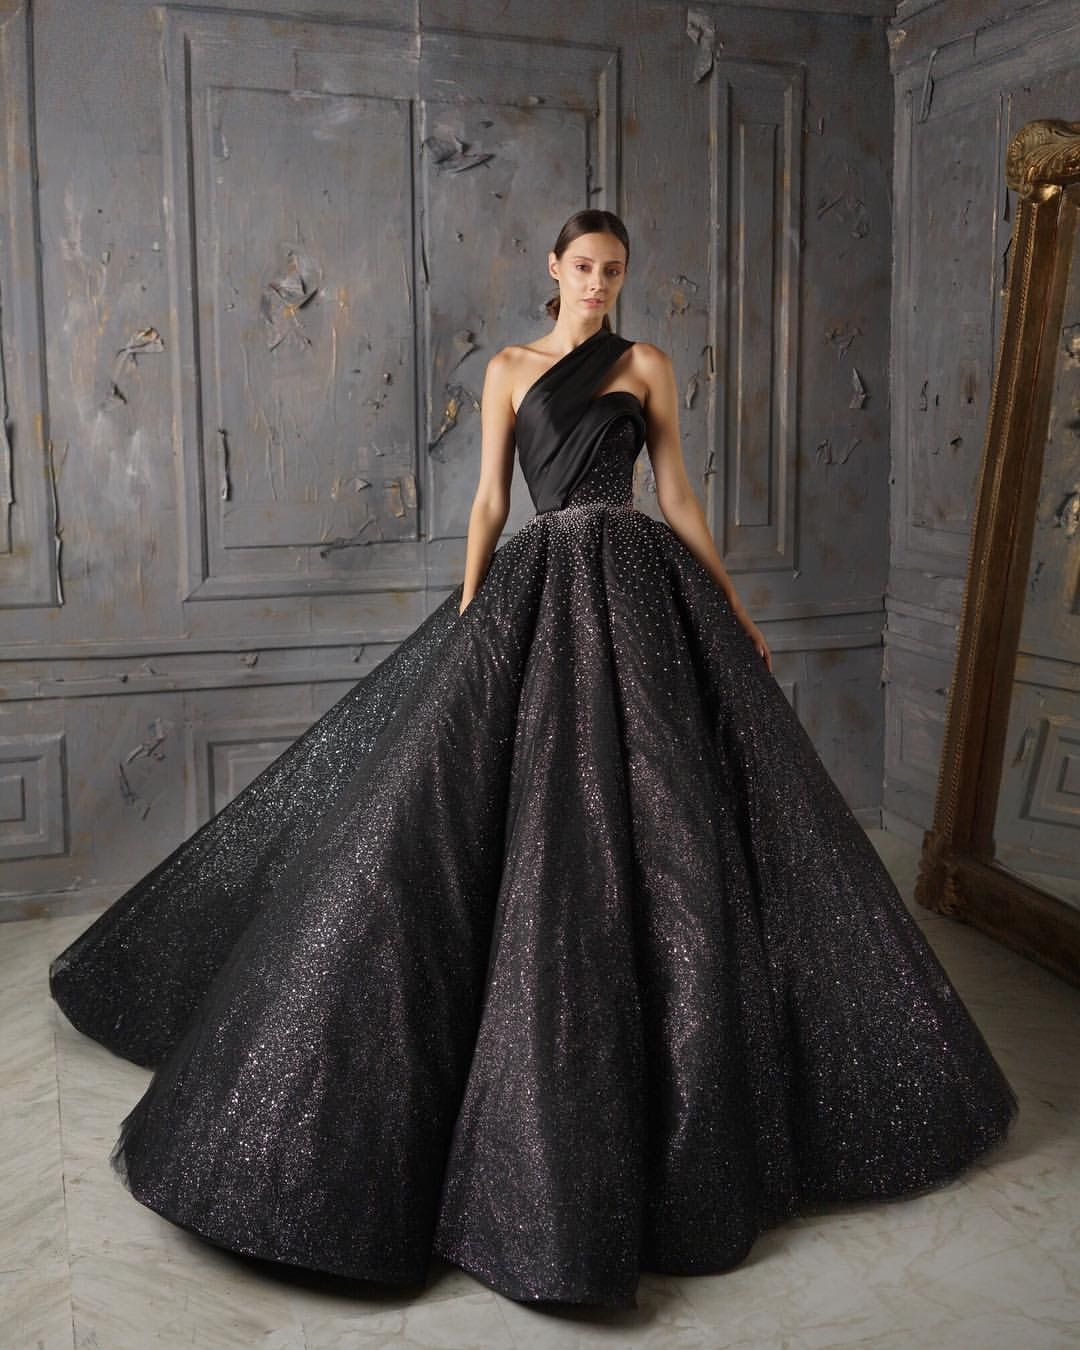 Pin by PromDressErin on Sparkly Dresses | Black ball gown ...